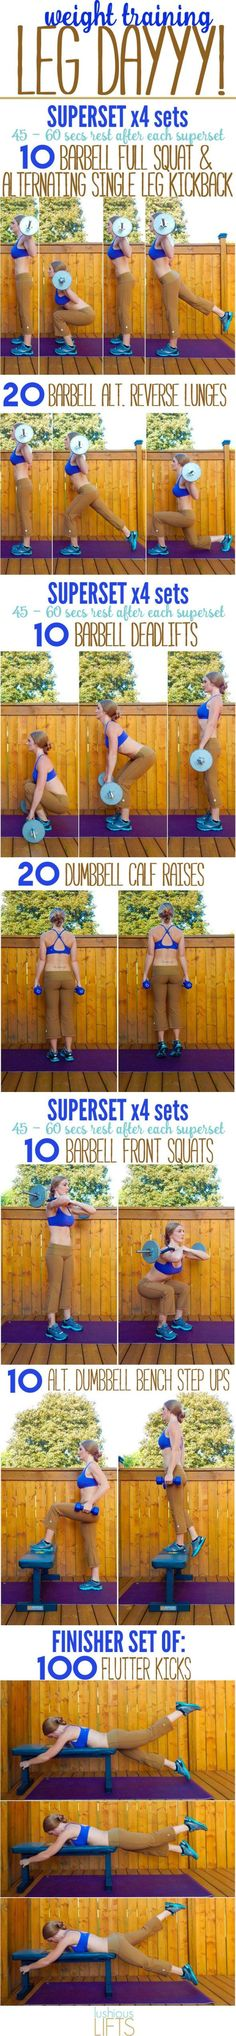 Leg supersets with a barbell. (This blogger has a variety of good workout posts with GIFs of the exercises.) | Posted By: AdvancedWeightLossTips.com